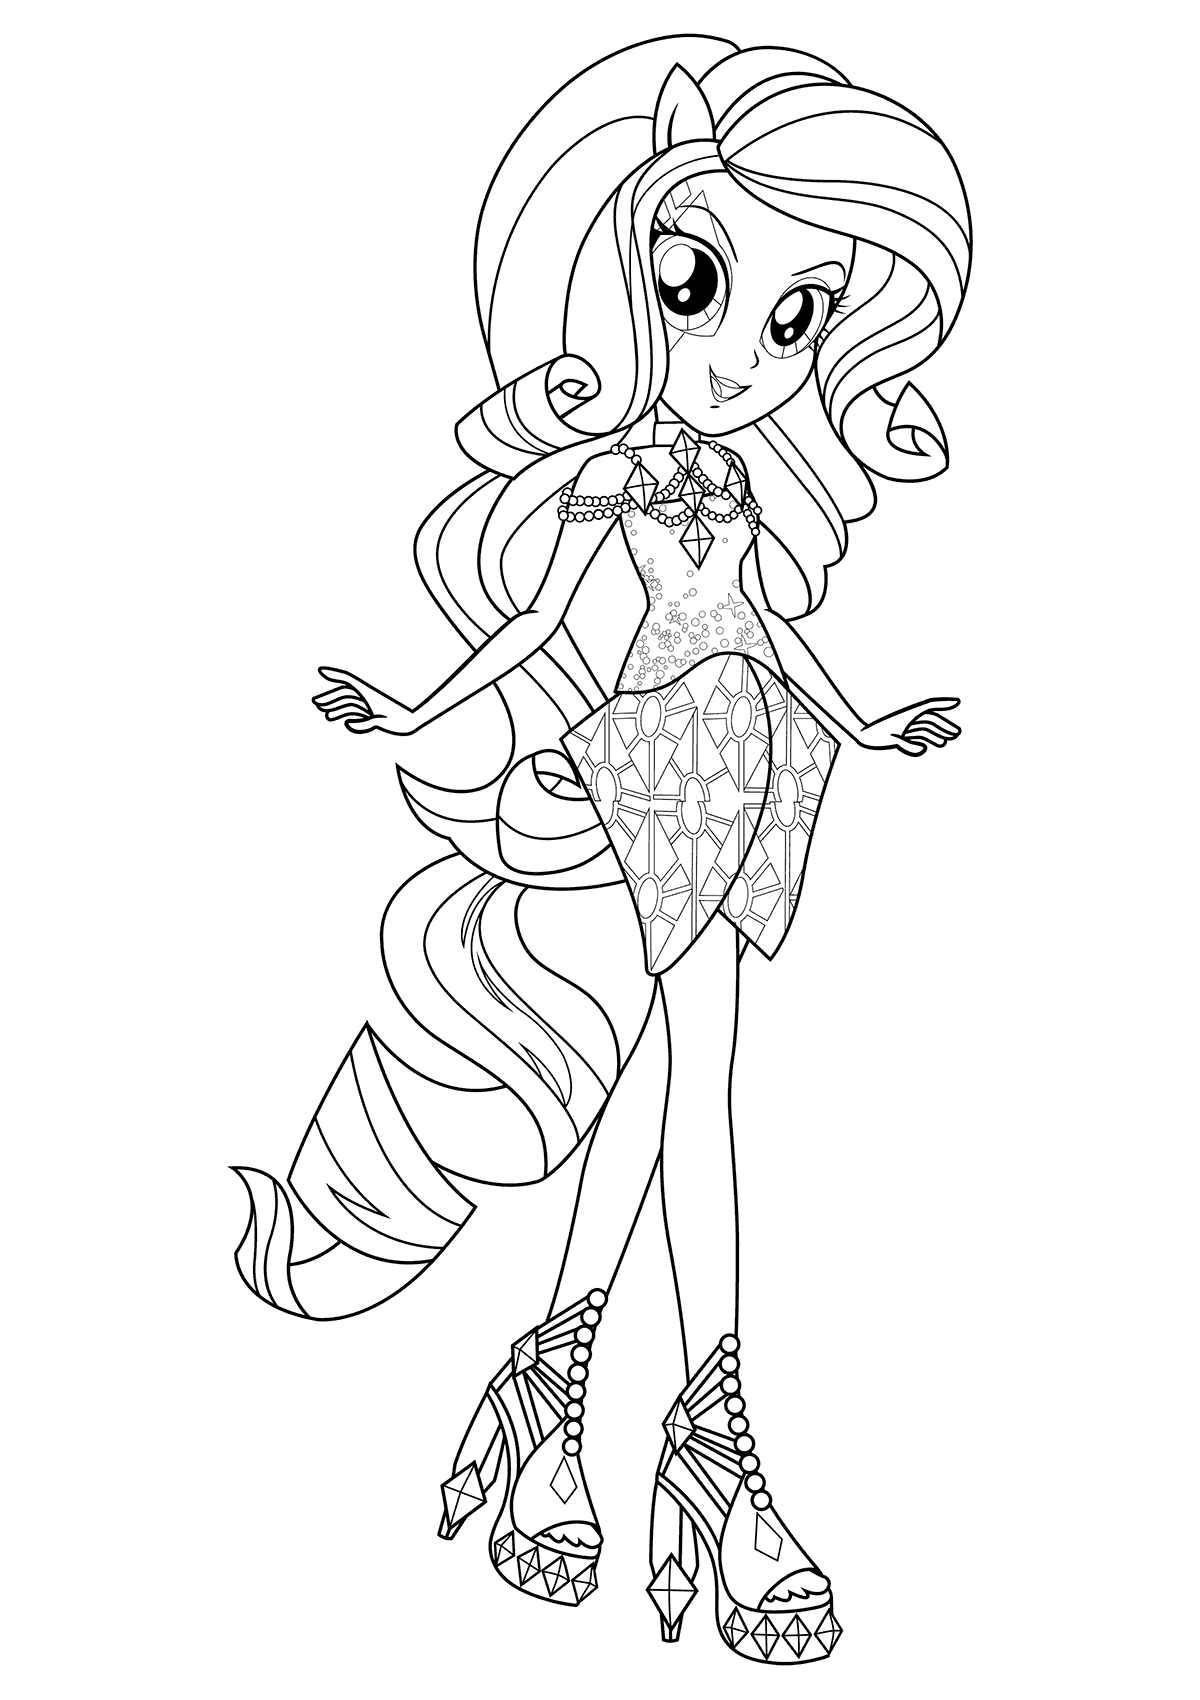 my little pony equestria coloring pages equestria girls coloring pages at getdrawingscom free pages little equestria coloring pony my